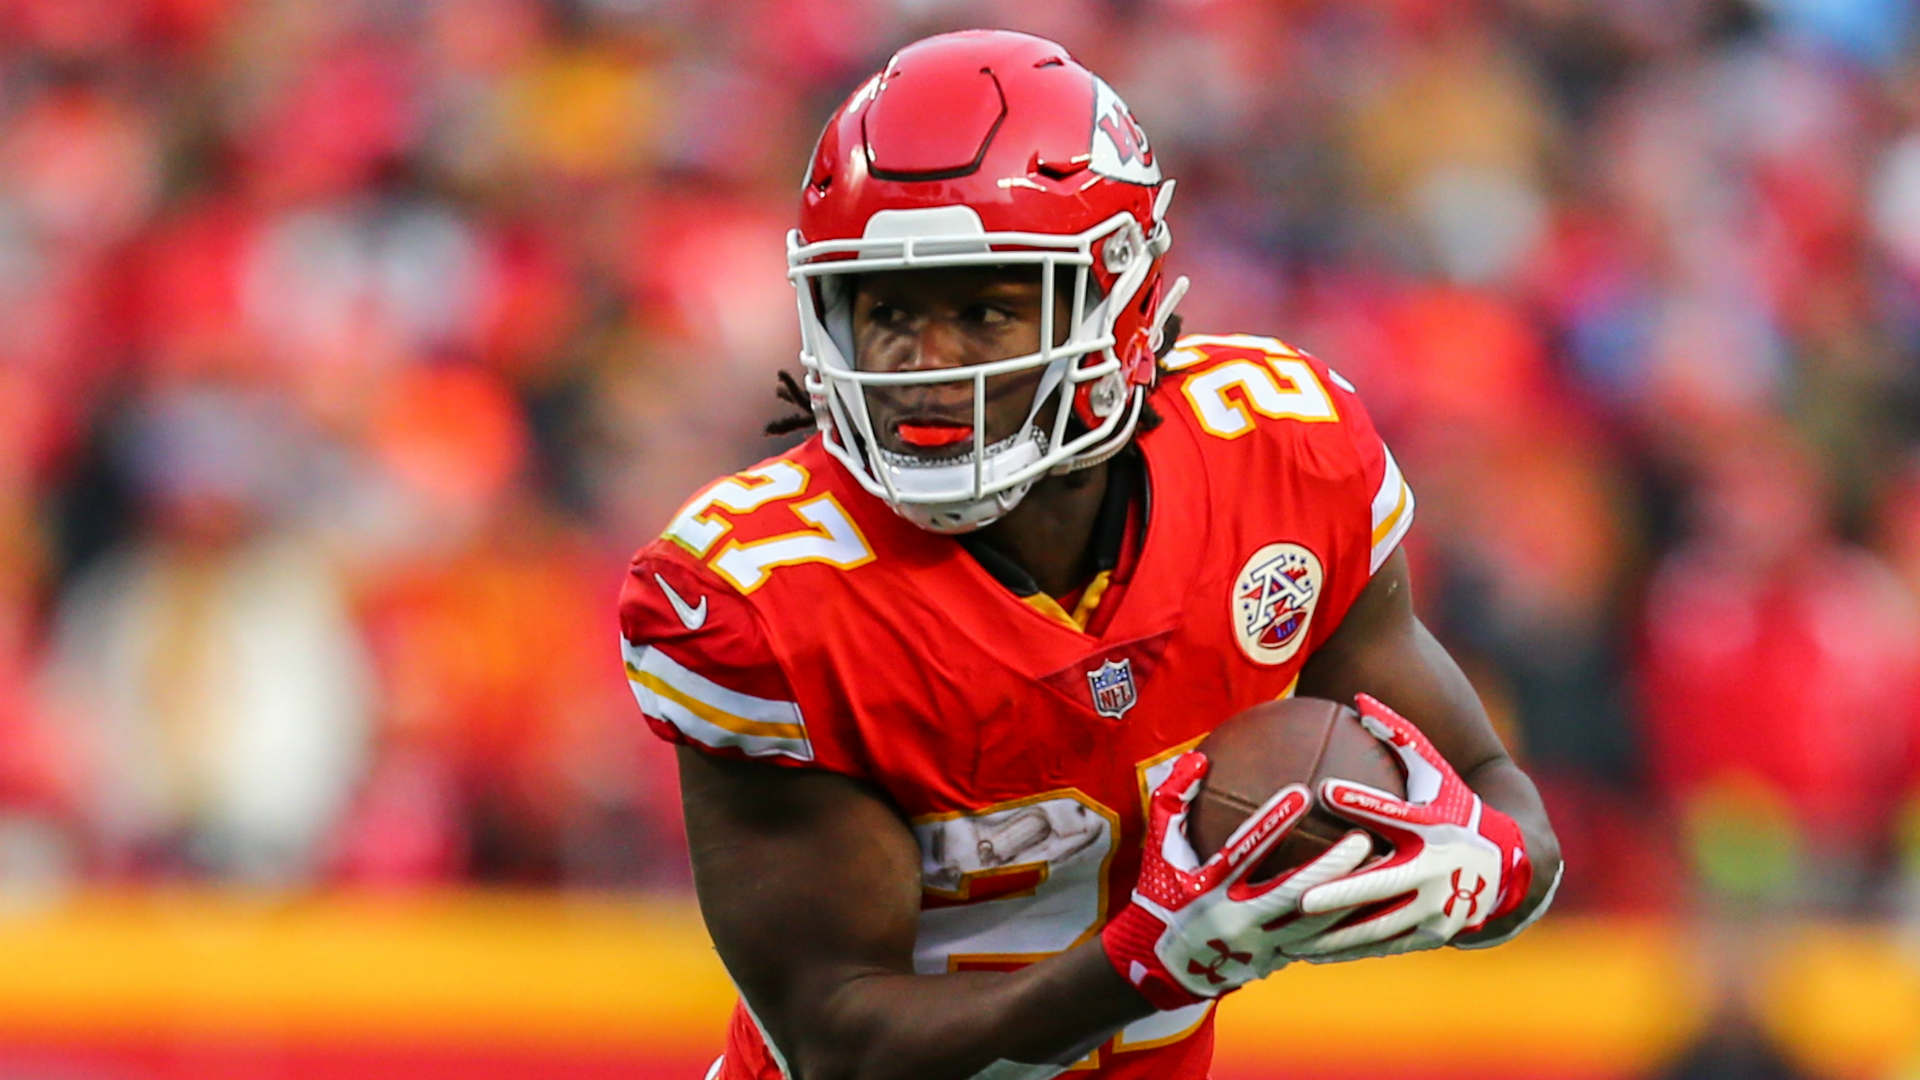 Cleveland Browns general manager John Dorsey discussed the team's signing of running back Kareem Hunt.